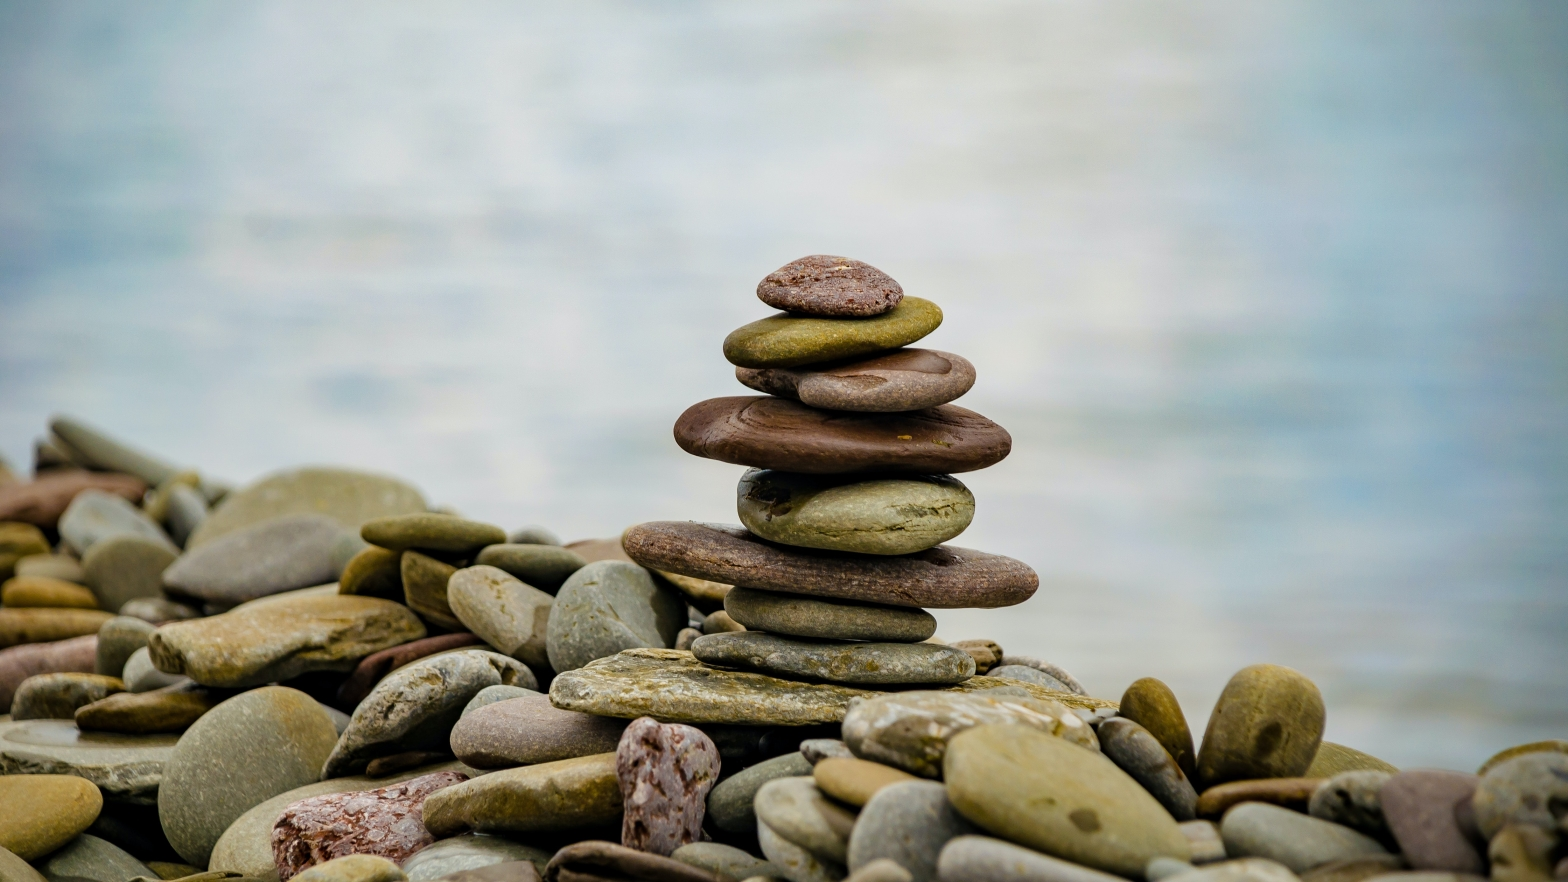 Photo of flat pebbles balanced in a pile on the beach